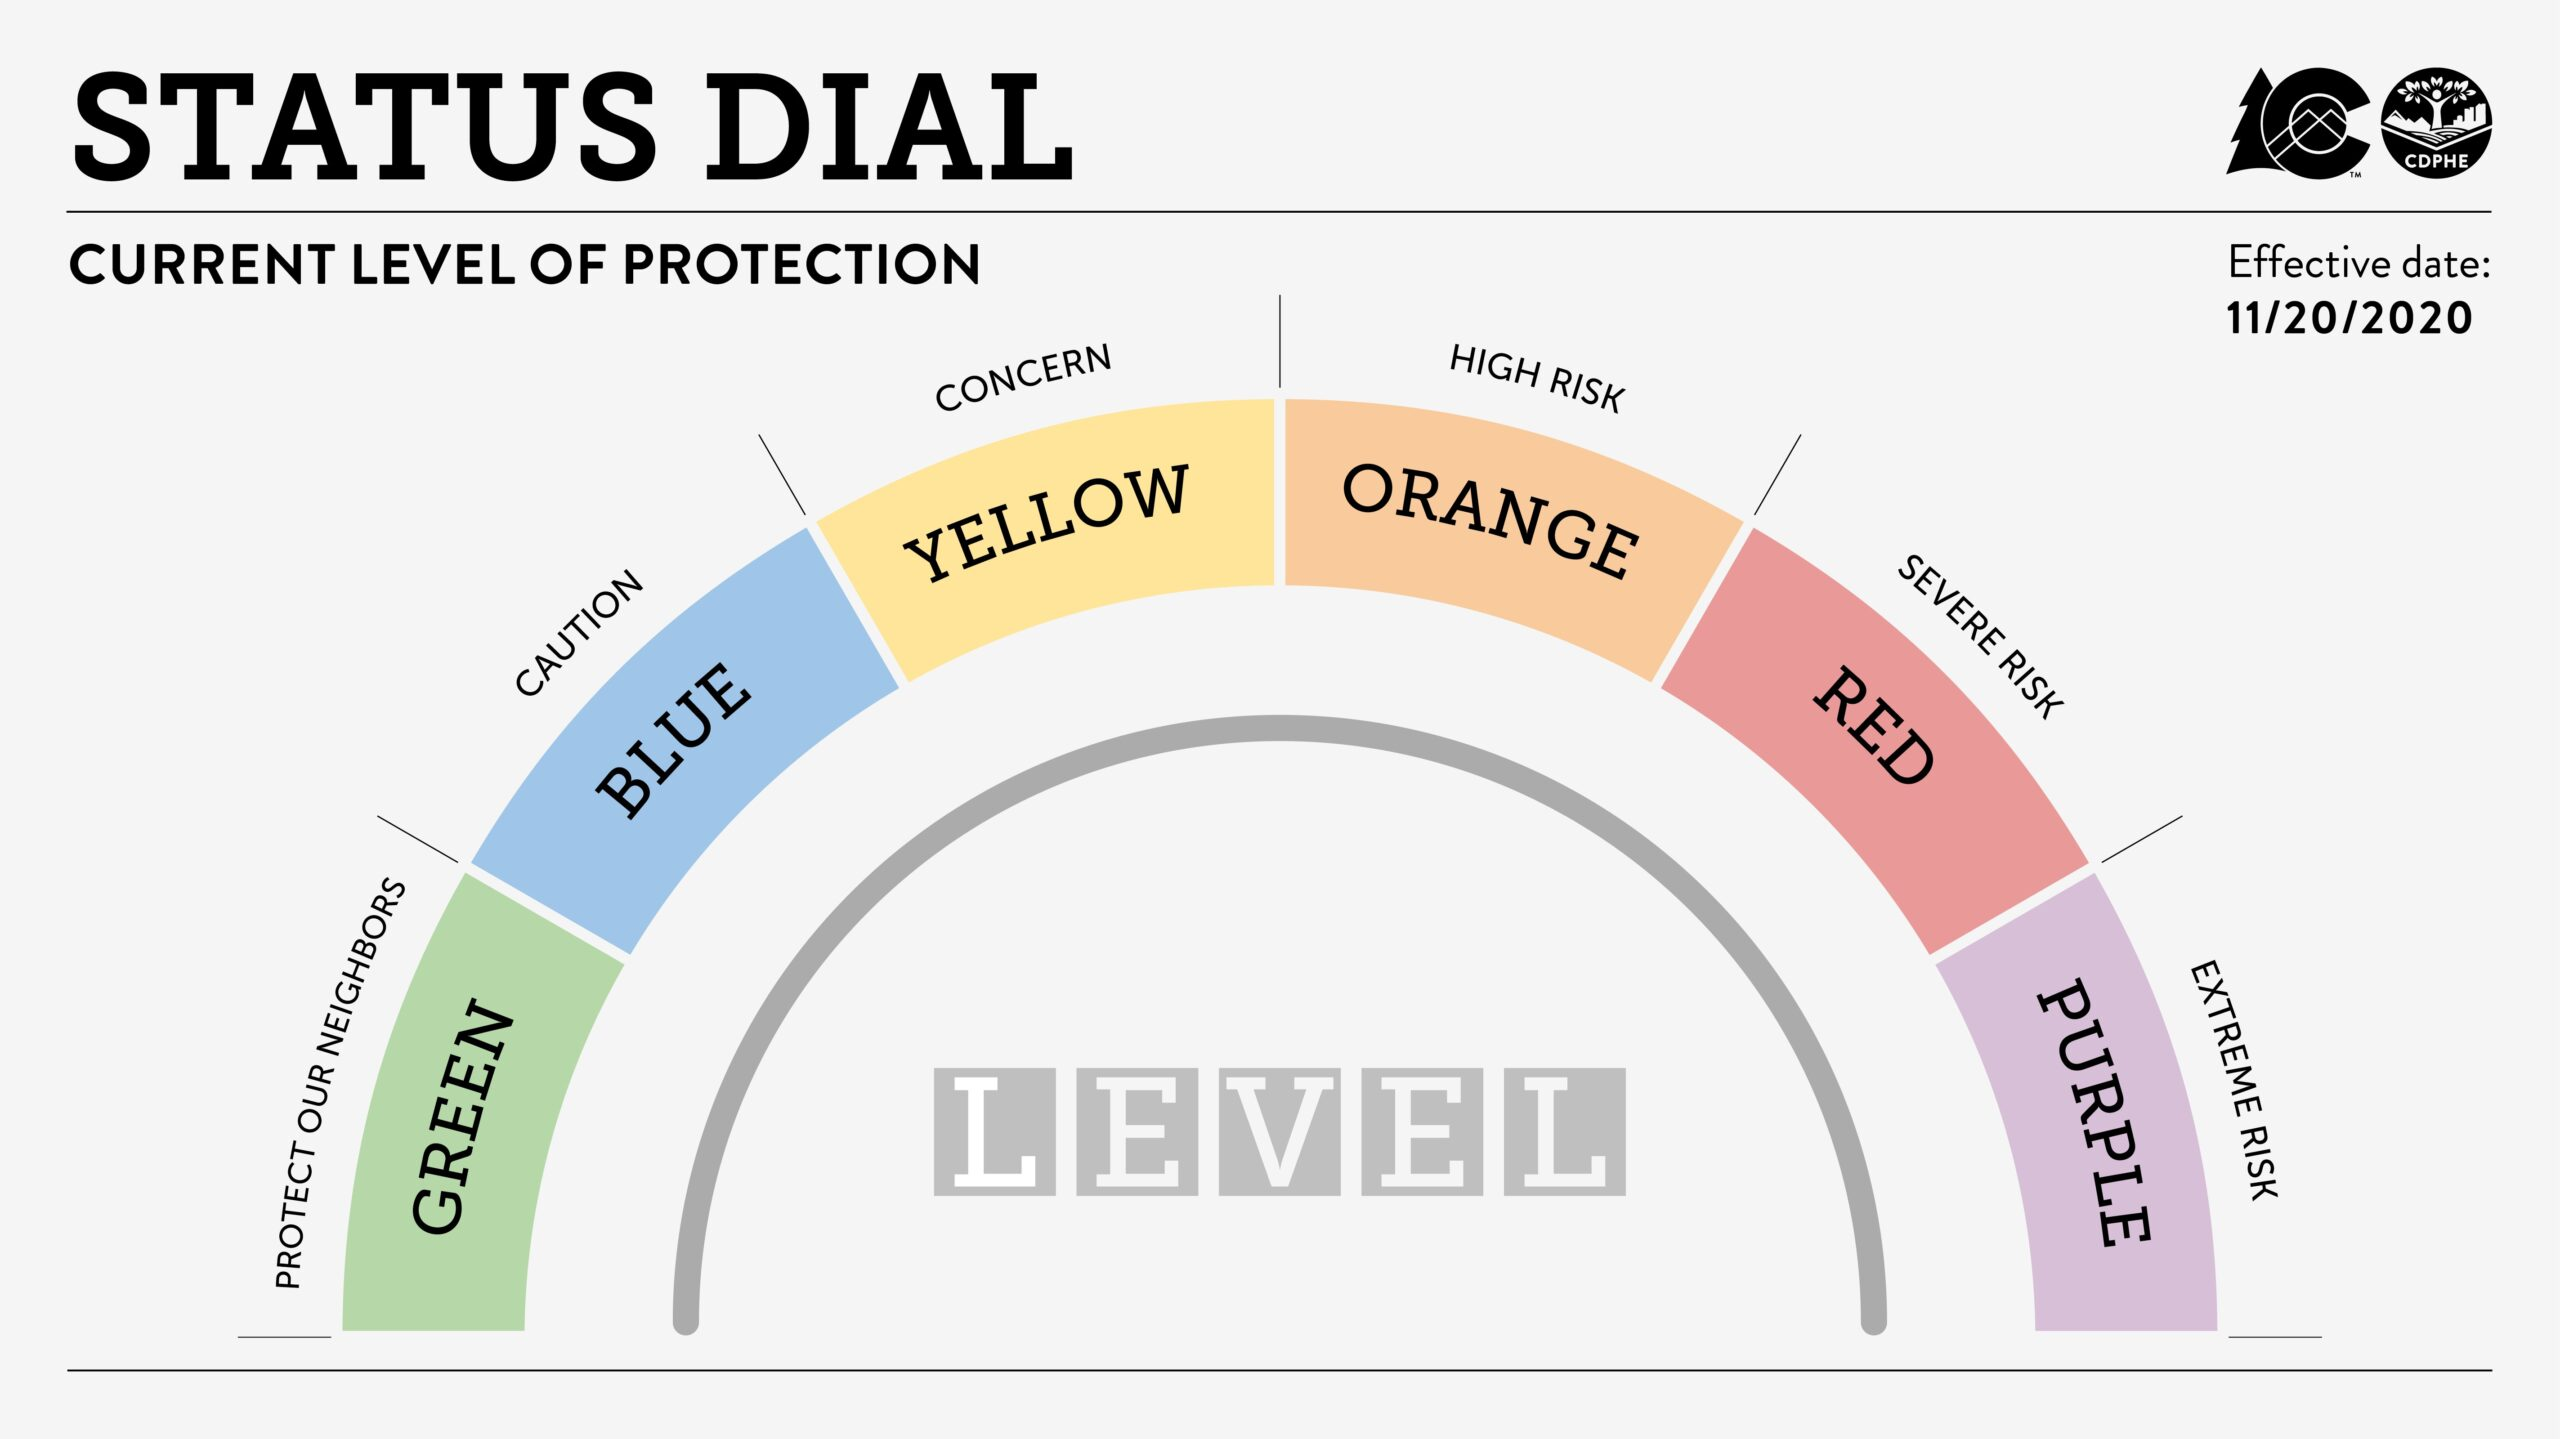 Graphic of COVID-19 Status Dial